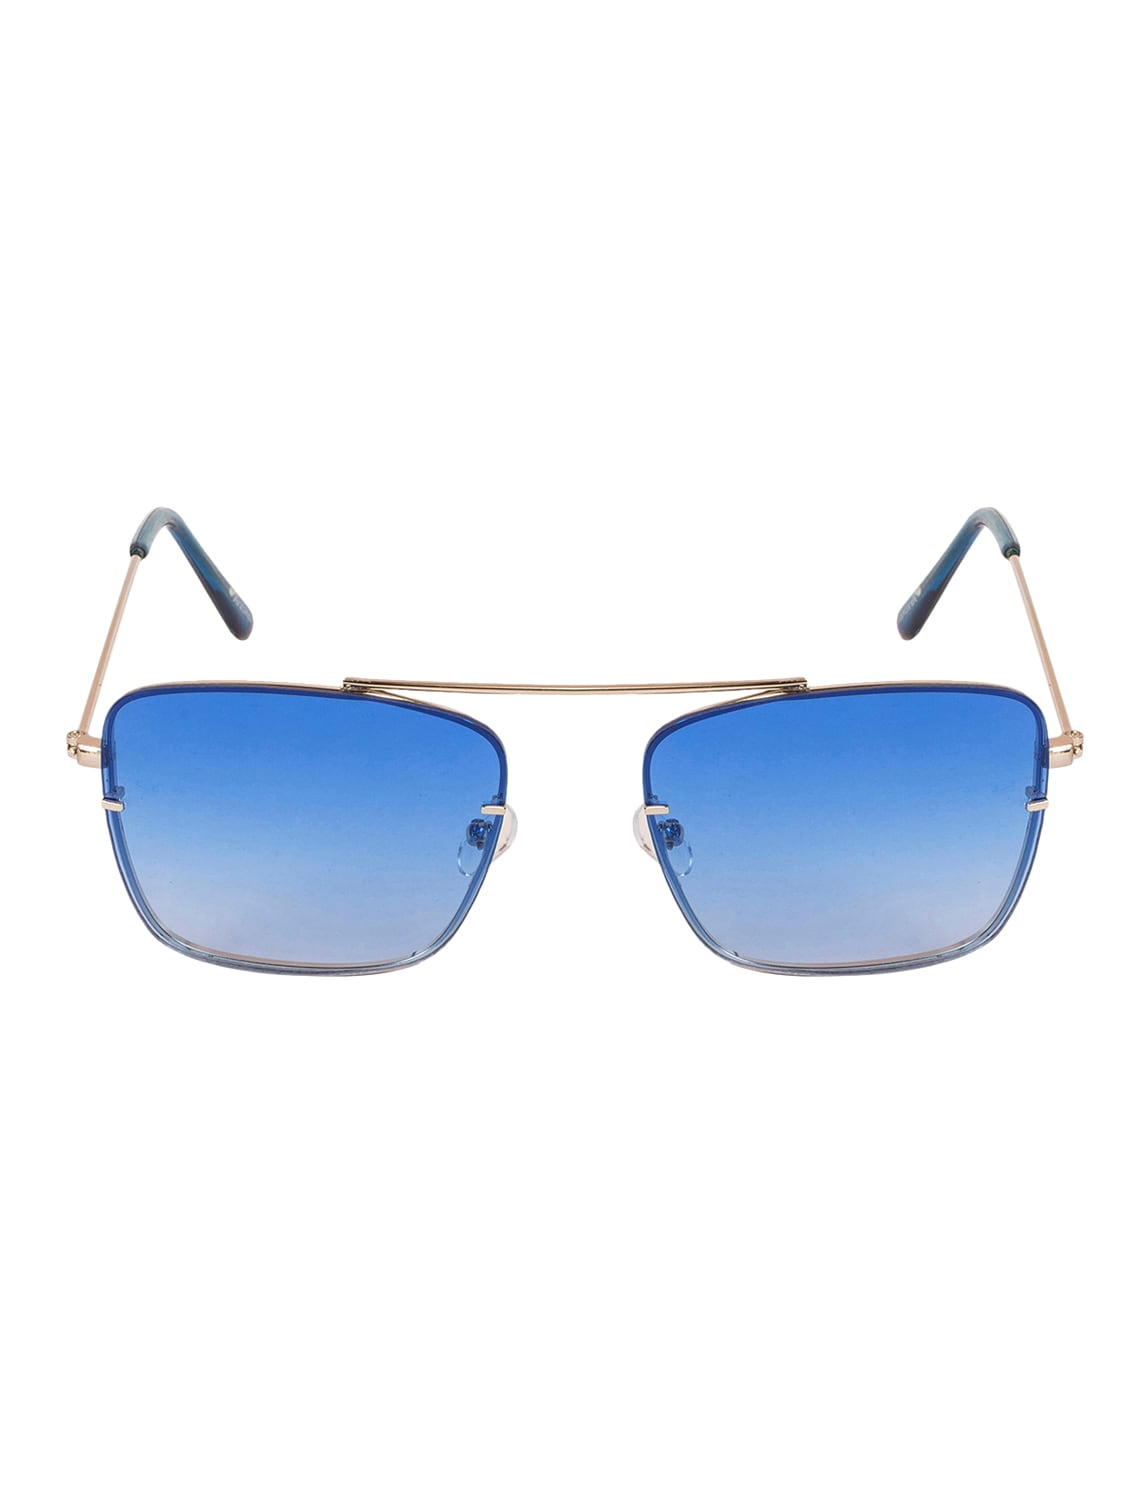 3a6c89f1cf9 Buy Arzonai Dapper Blue Square Shape Uv Protected Sunglasses For Men    Women (ma-2222-s6) by Arzonai - Online shopping for Sunglasses in India